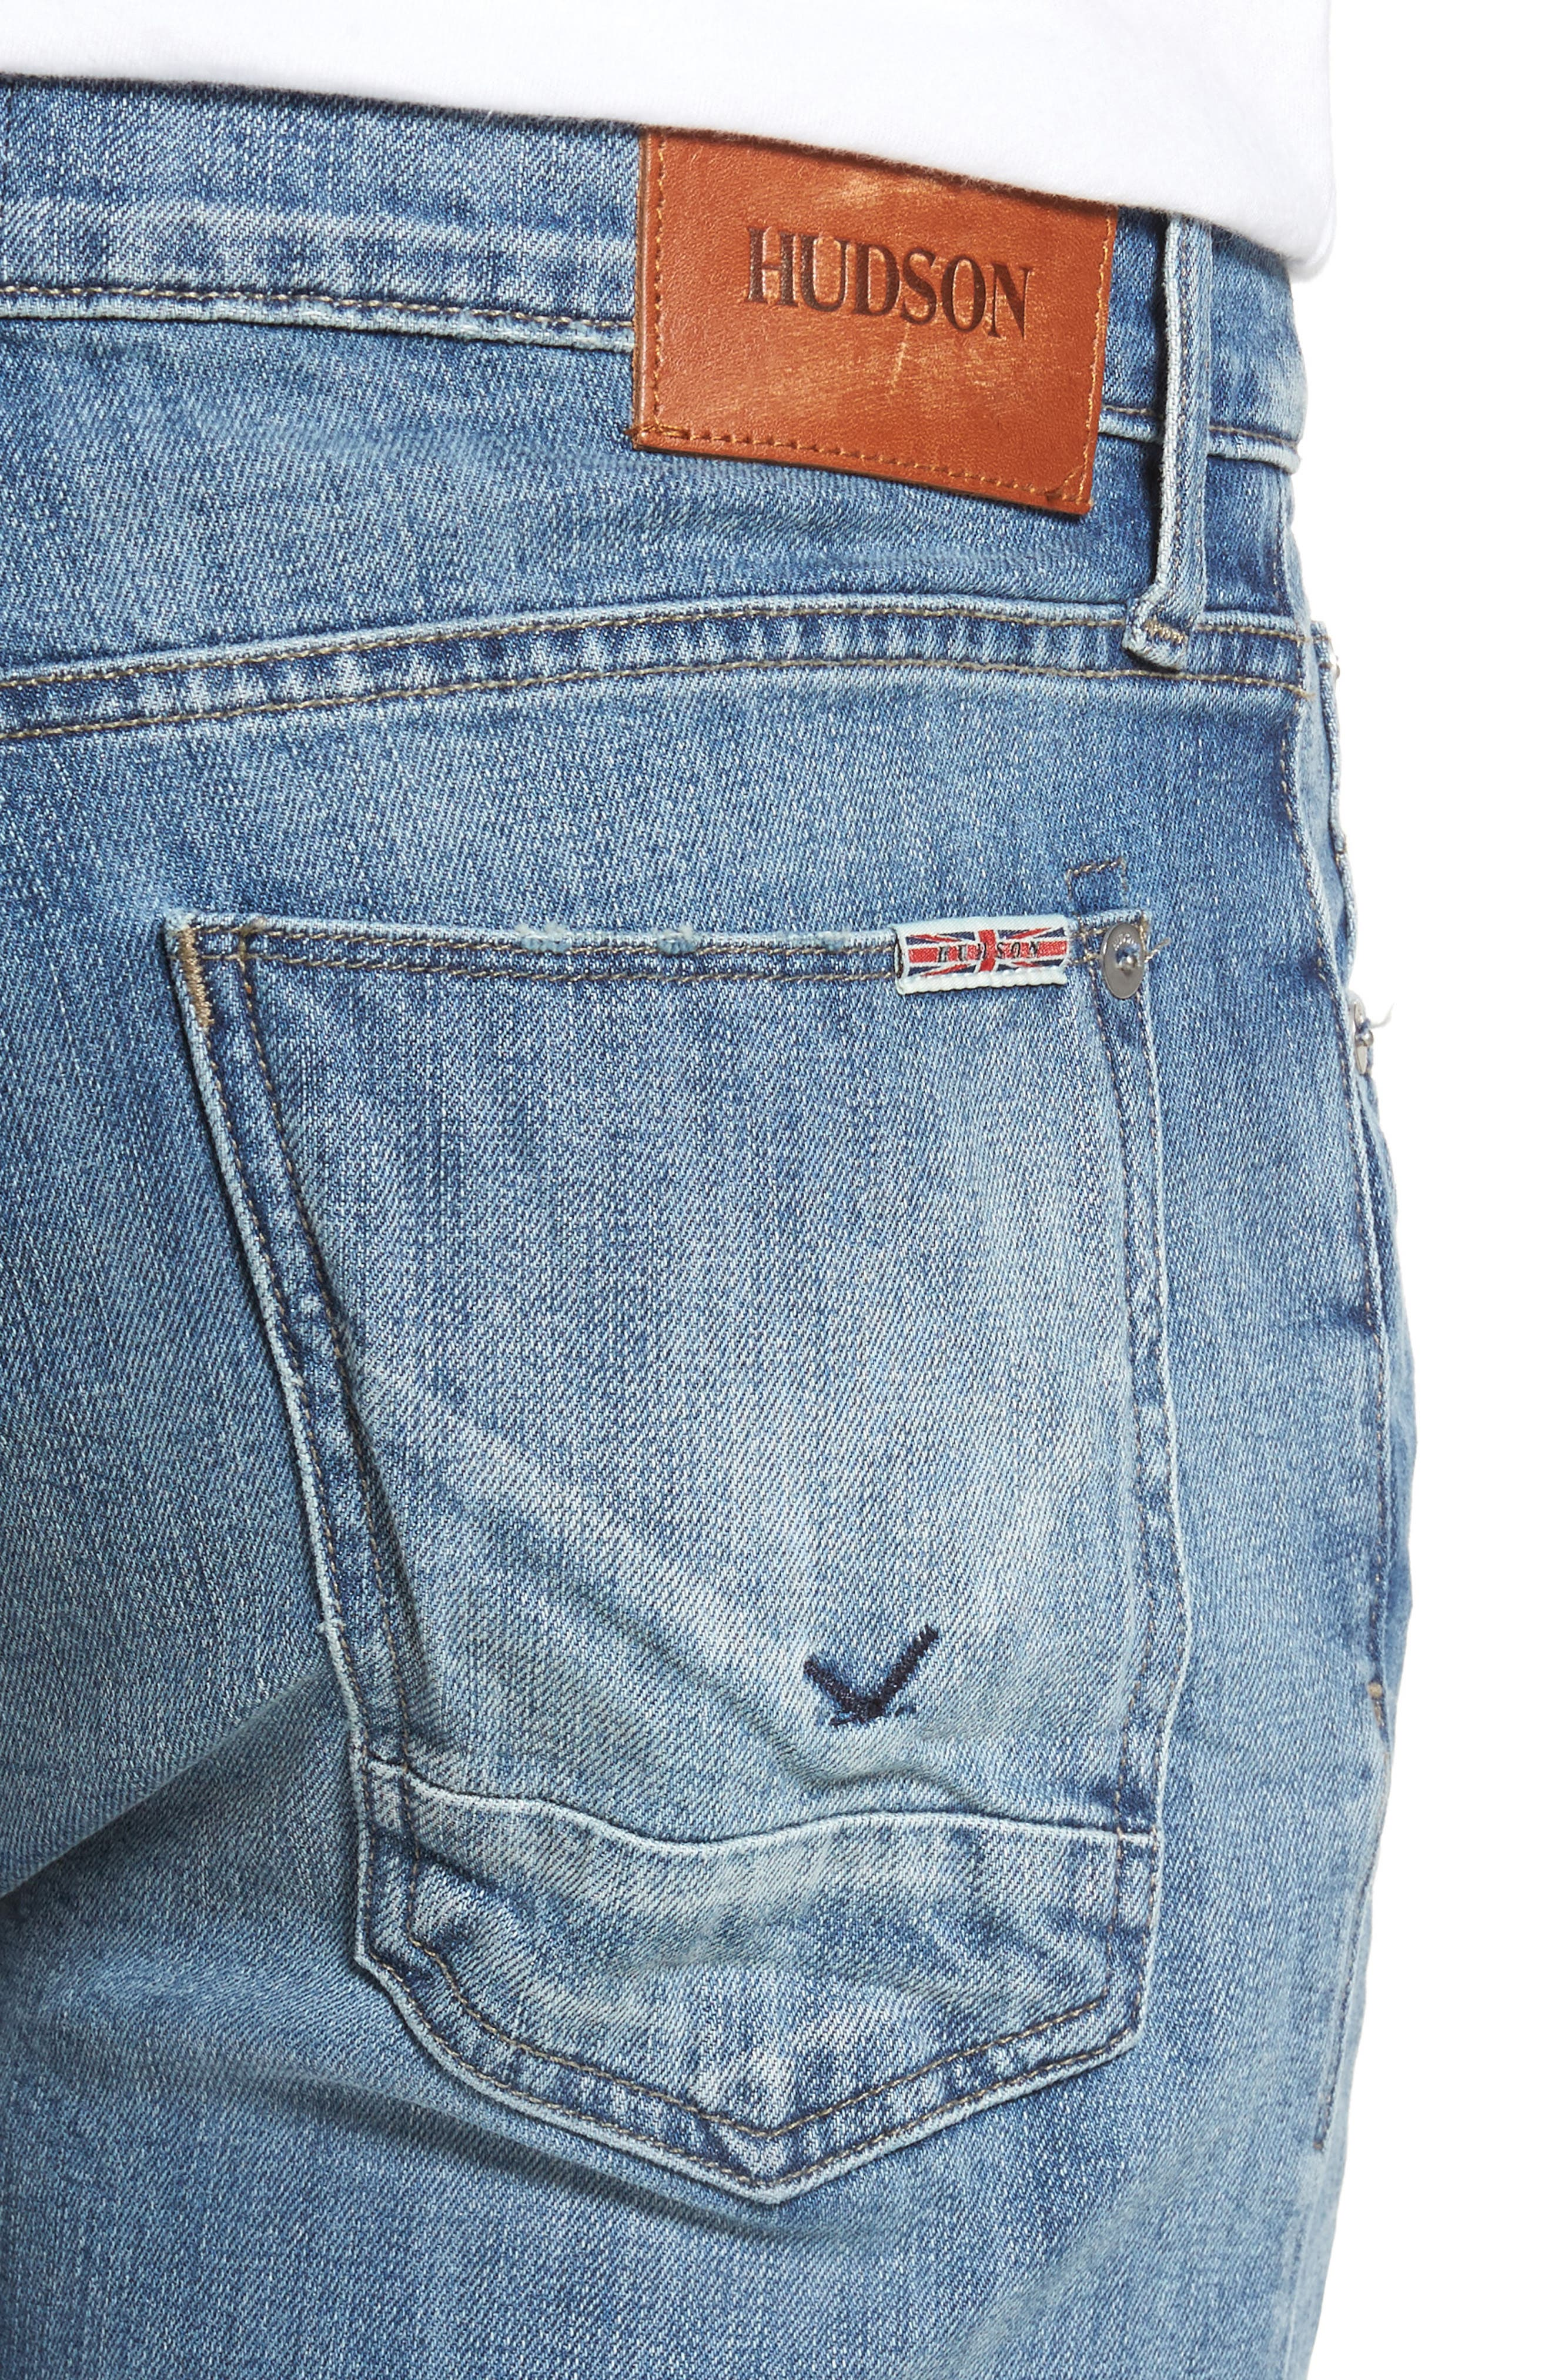 Axl Skinny Fit Jeans,                             Alternate thumbnail 4, color,                             Racking